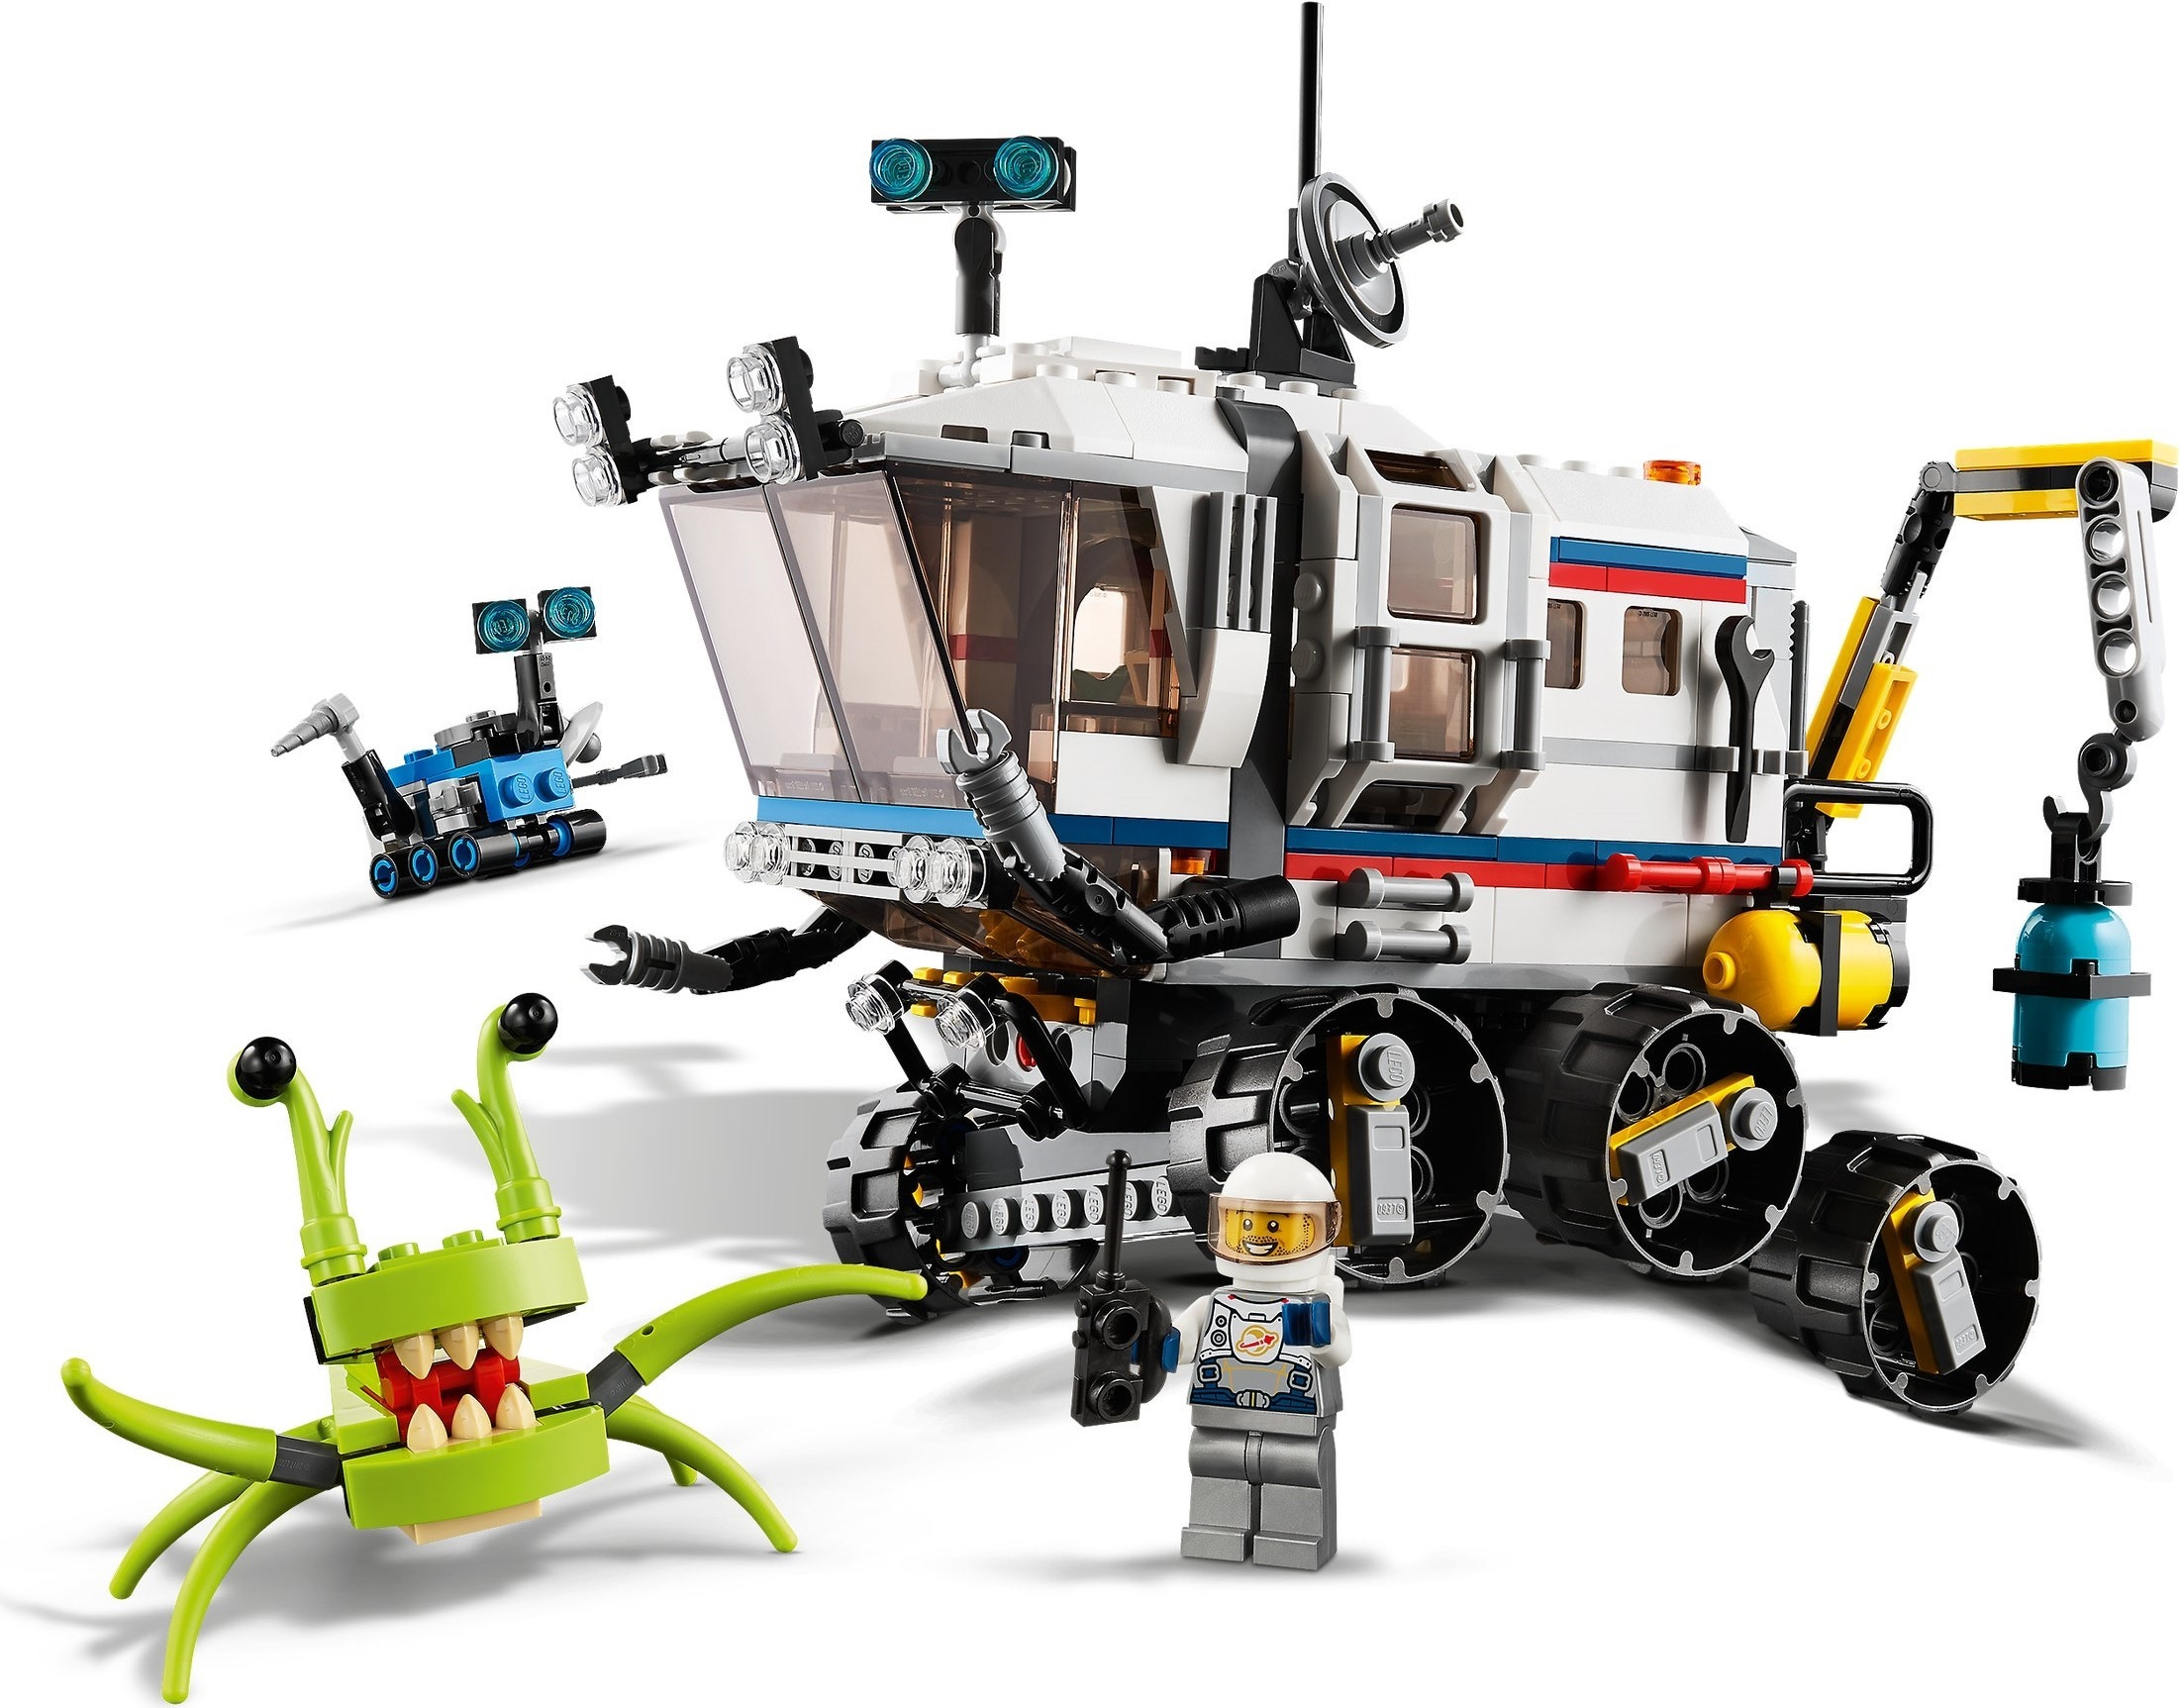 It S Out Of This World Creator 3 In 1 31115 Space Mining Mech Review The Rambling Brick